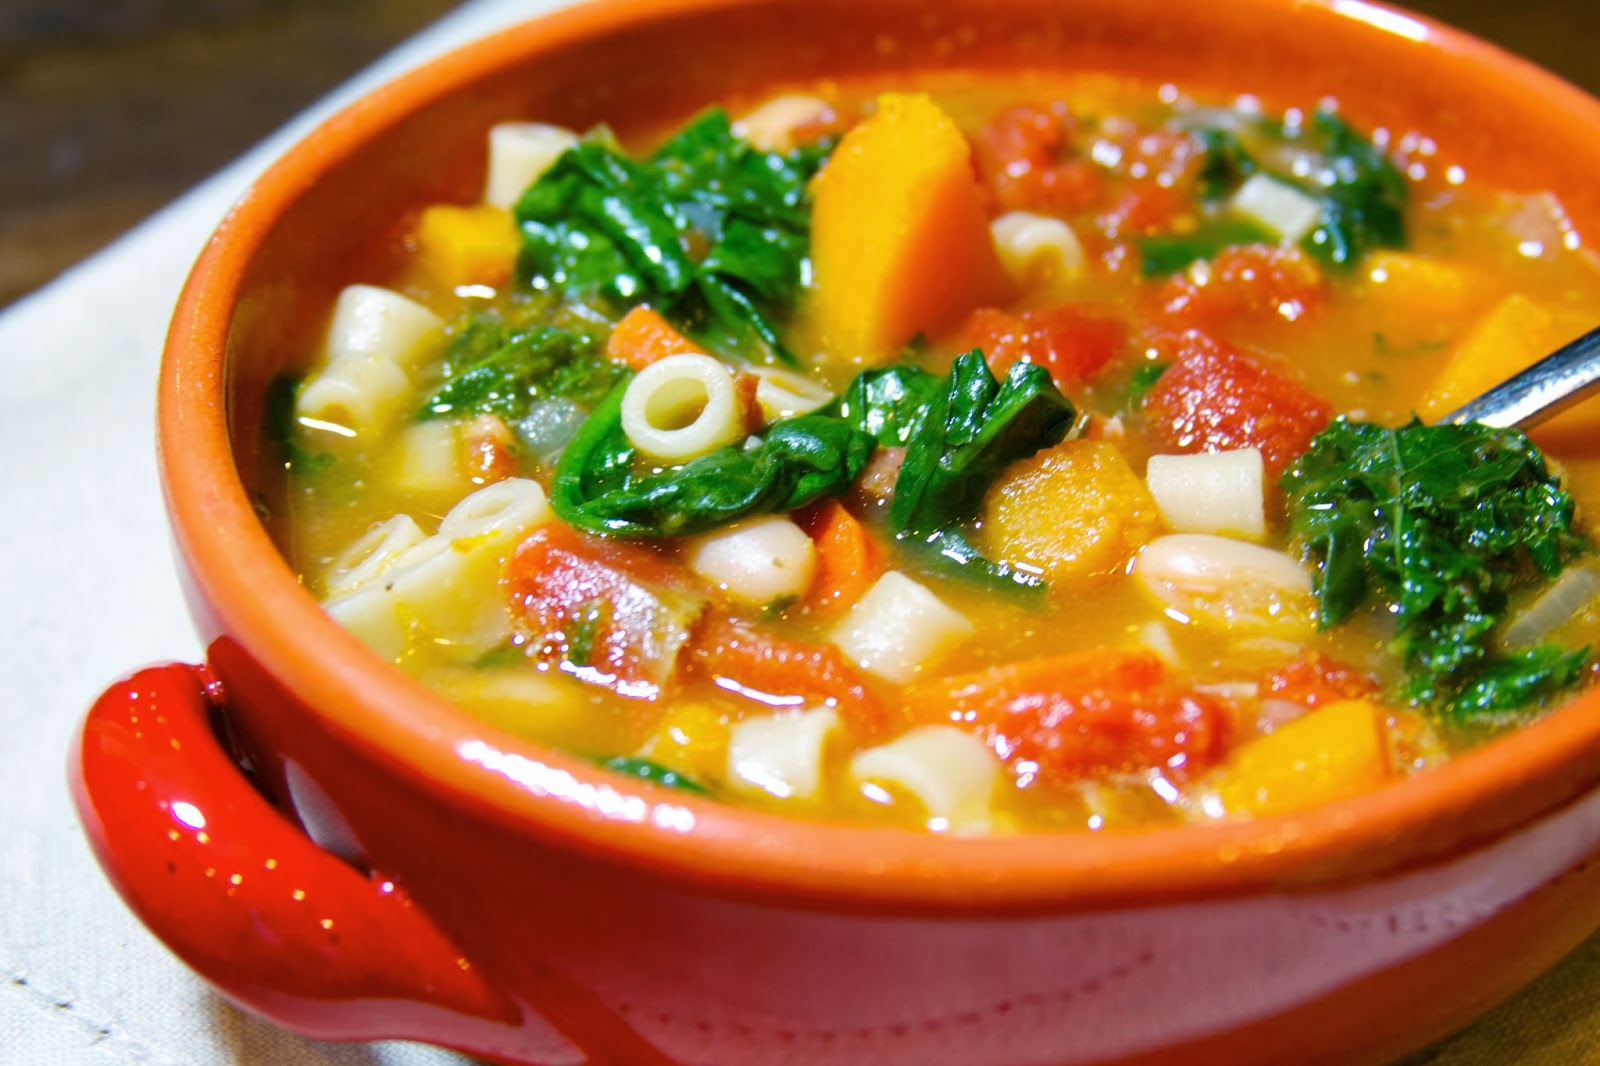 Ina Garten Soup Recipes my soup addiction: ina garten's winter minestrone | salty sweet life